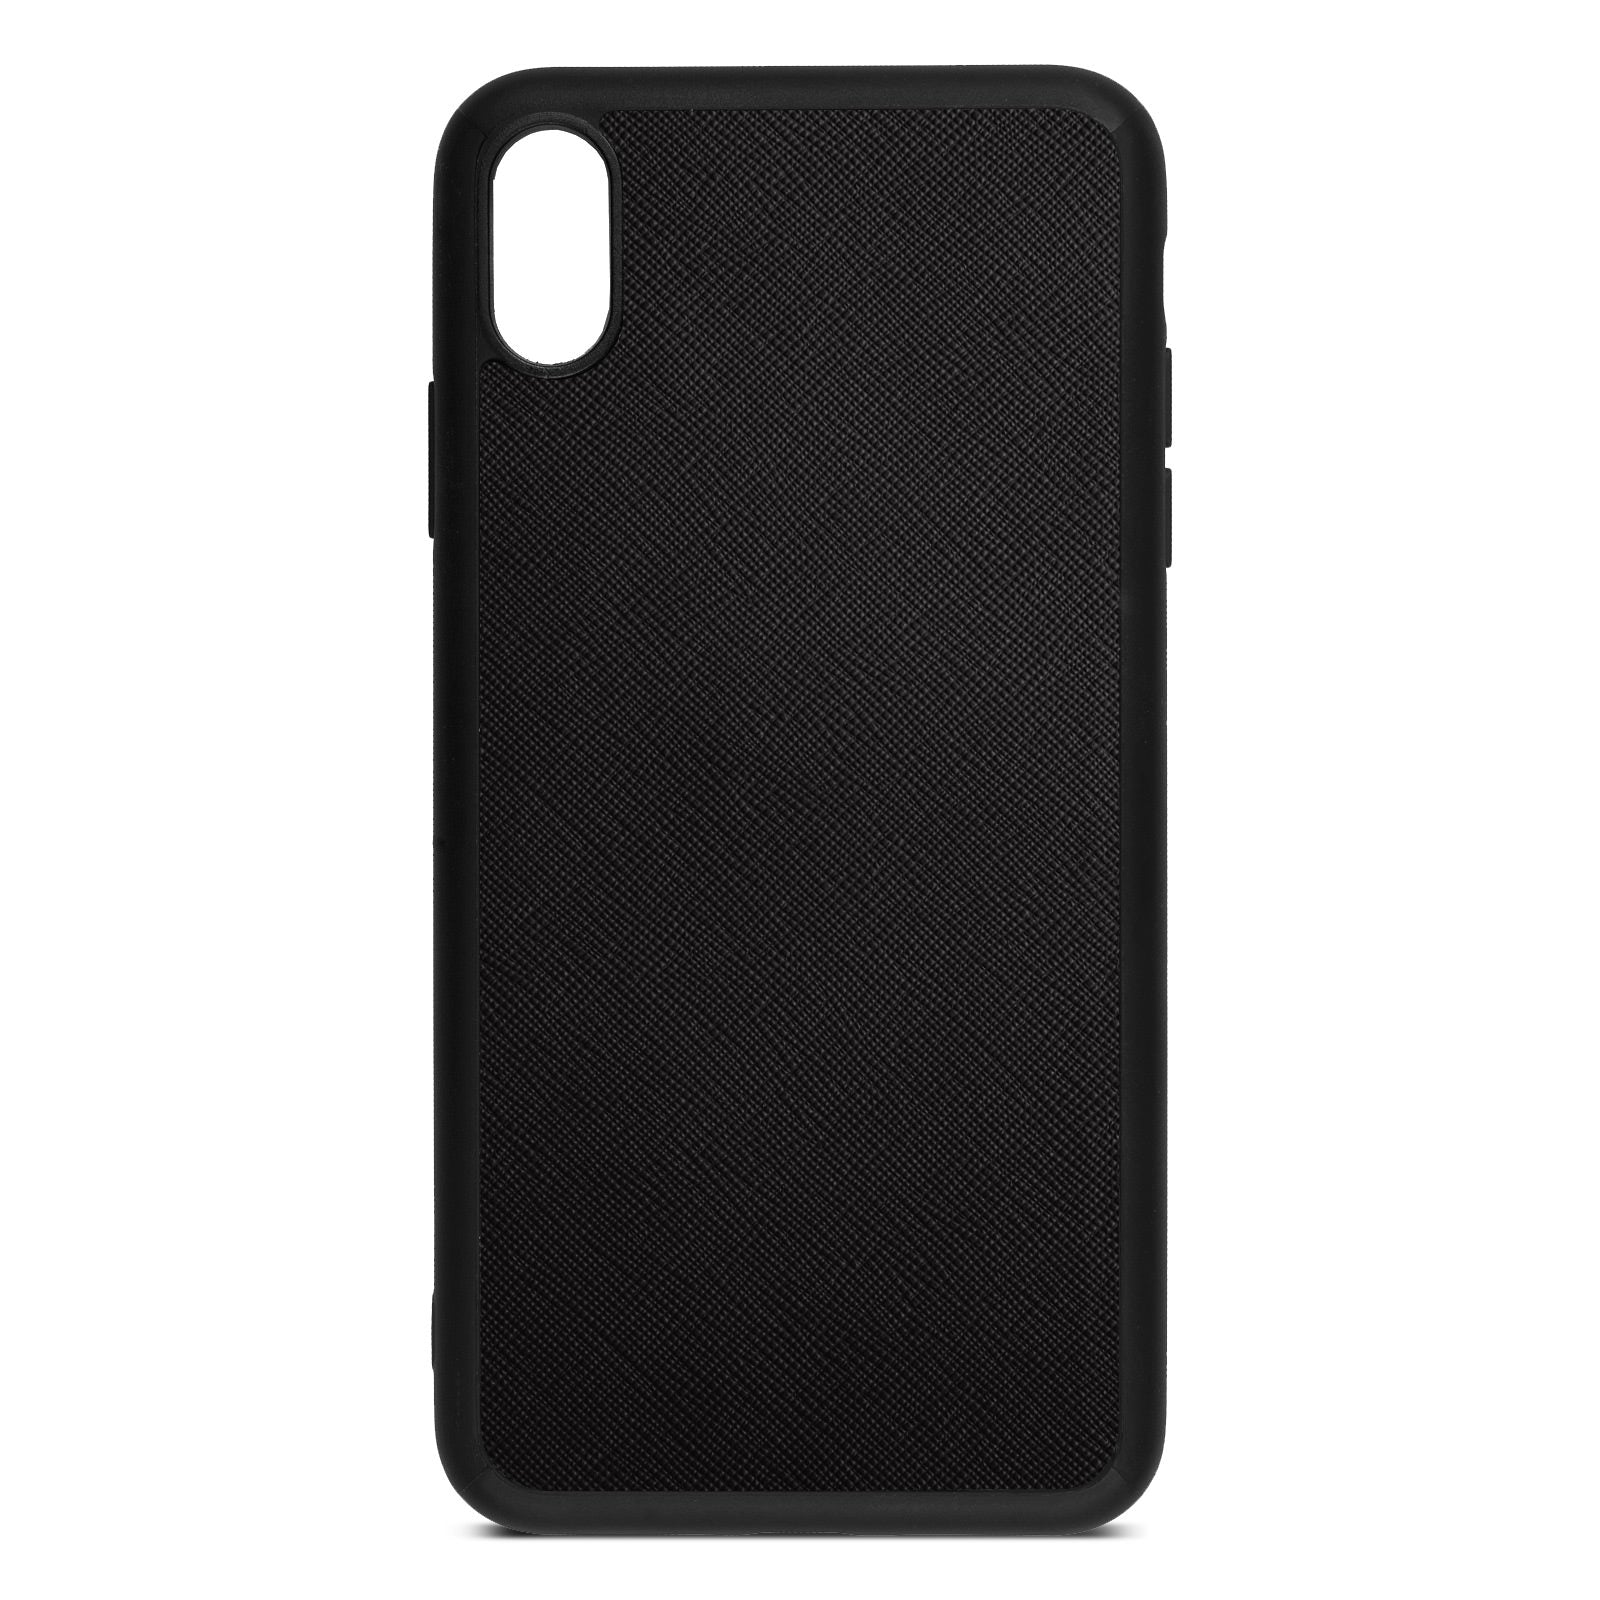 Blank iPhone XS Max Drop Shadow Black Leather Case